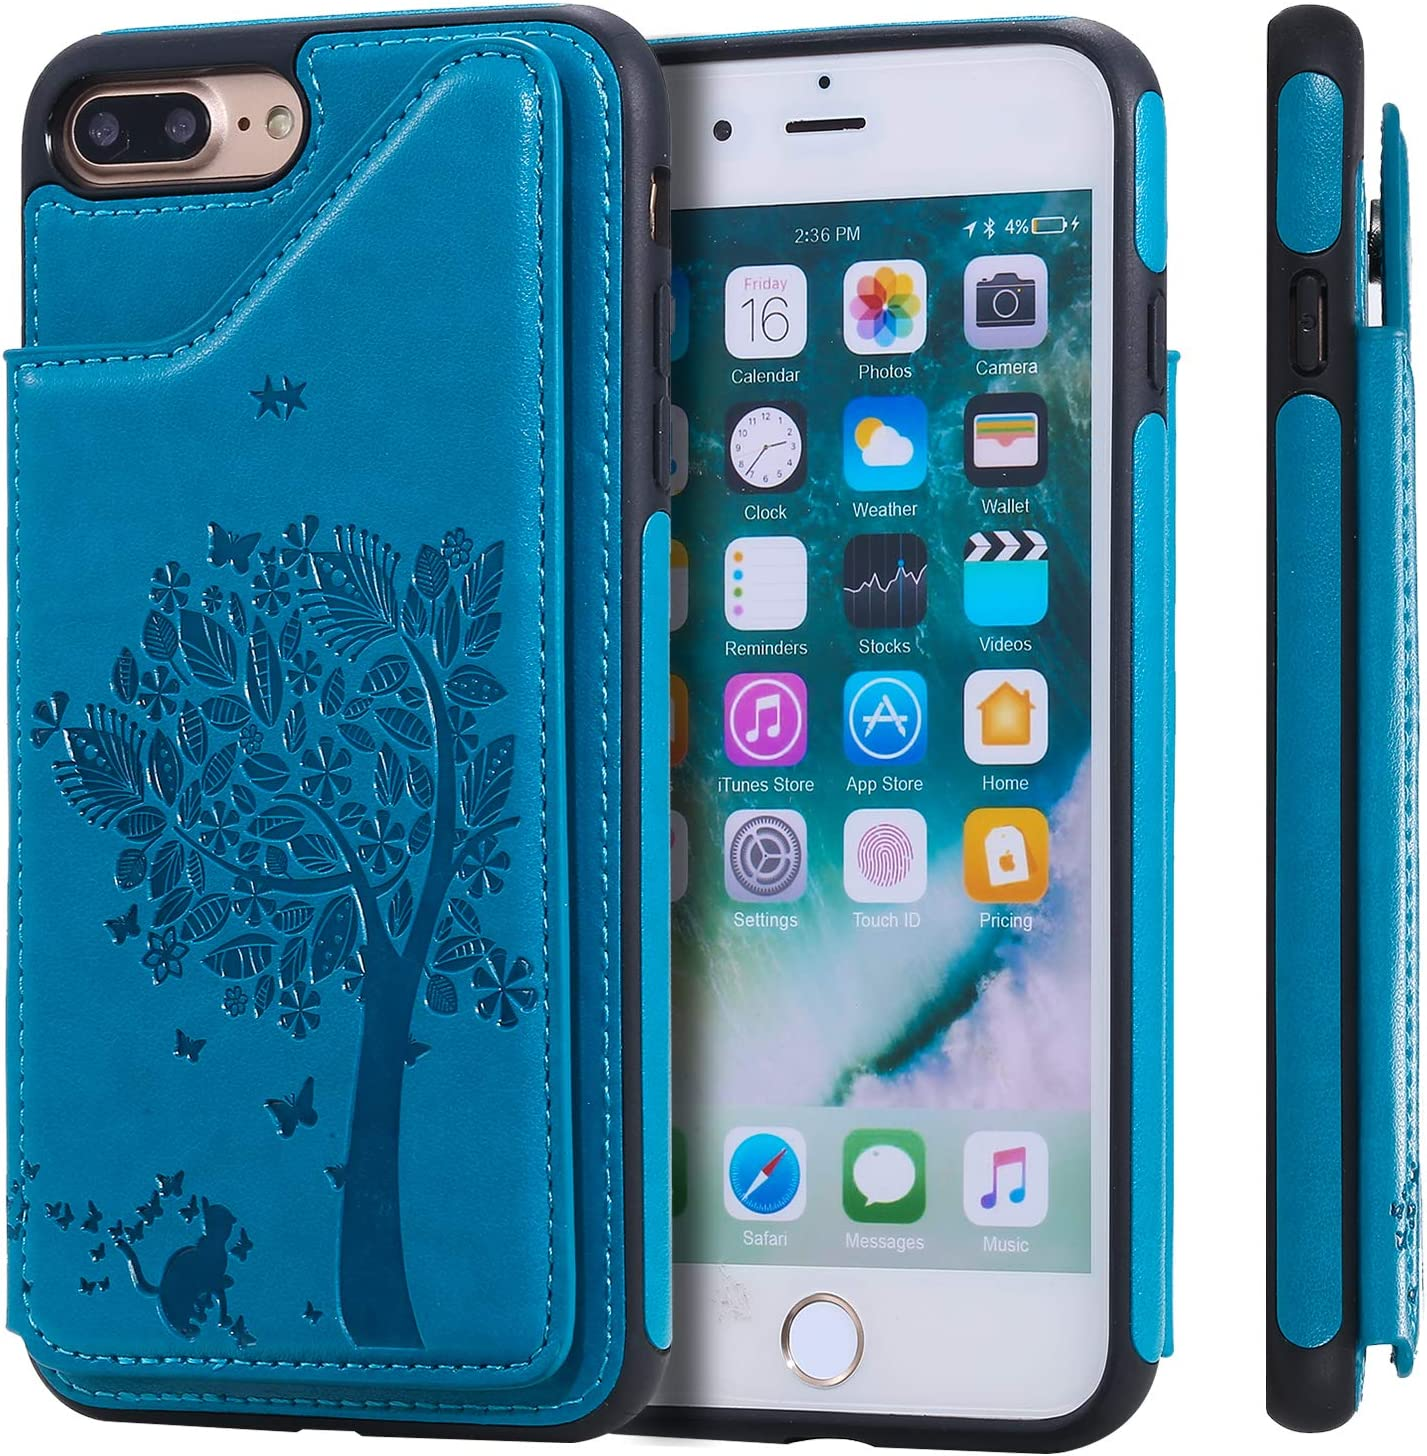 NEKTU120026 Blue 7 Plus 8Plus NEXCURIO Leather Silicone Case for iPhone 8 Plus Shockproof Anti-Scratch Shock Absorption Protective Cover Case for Apple iPhone 7Plus